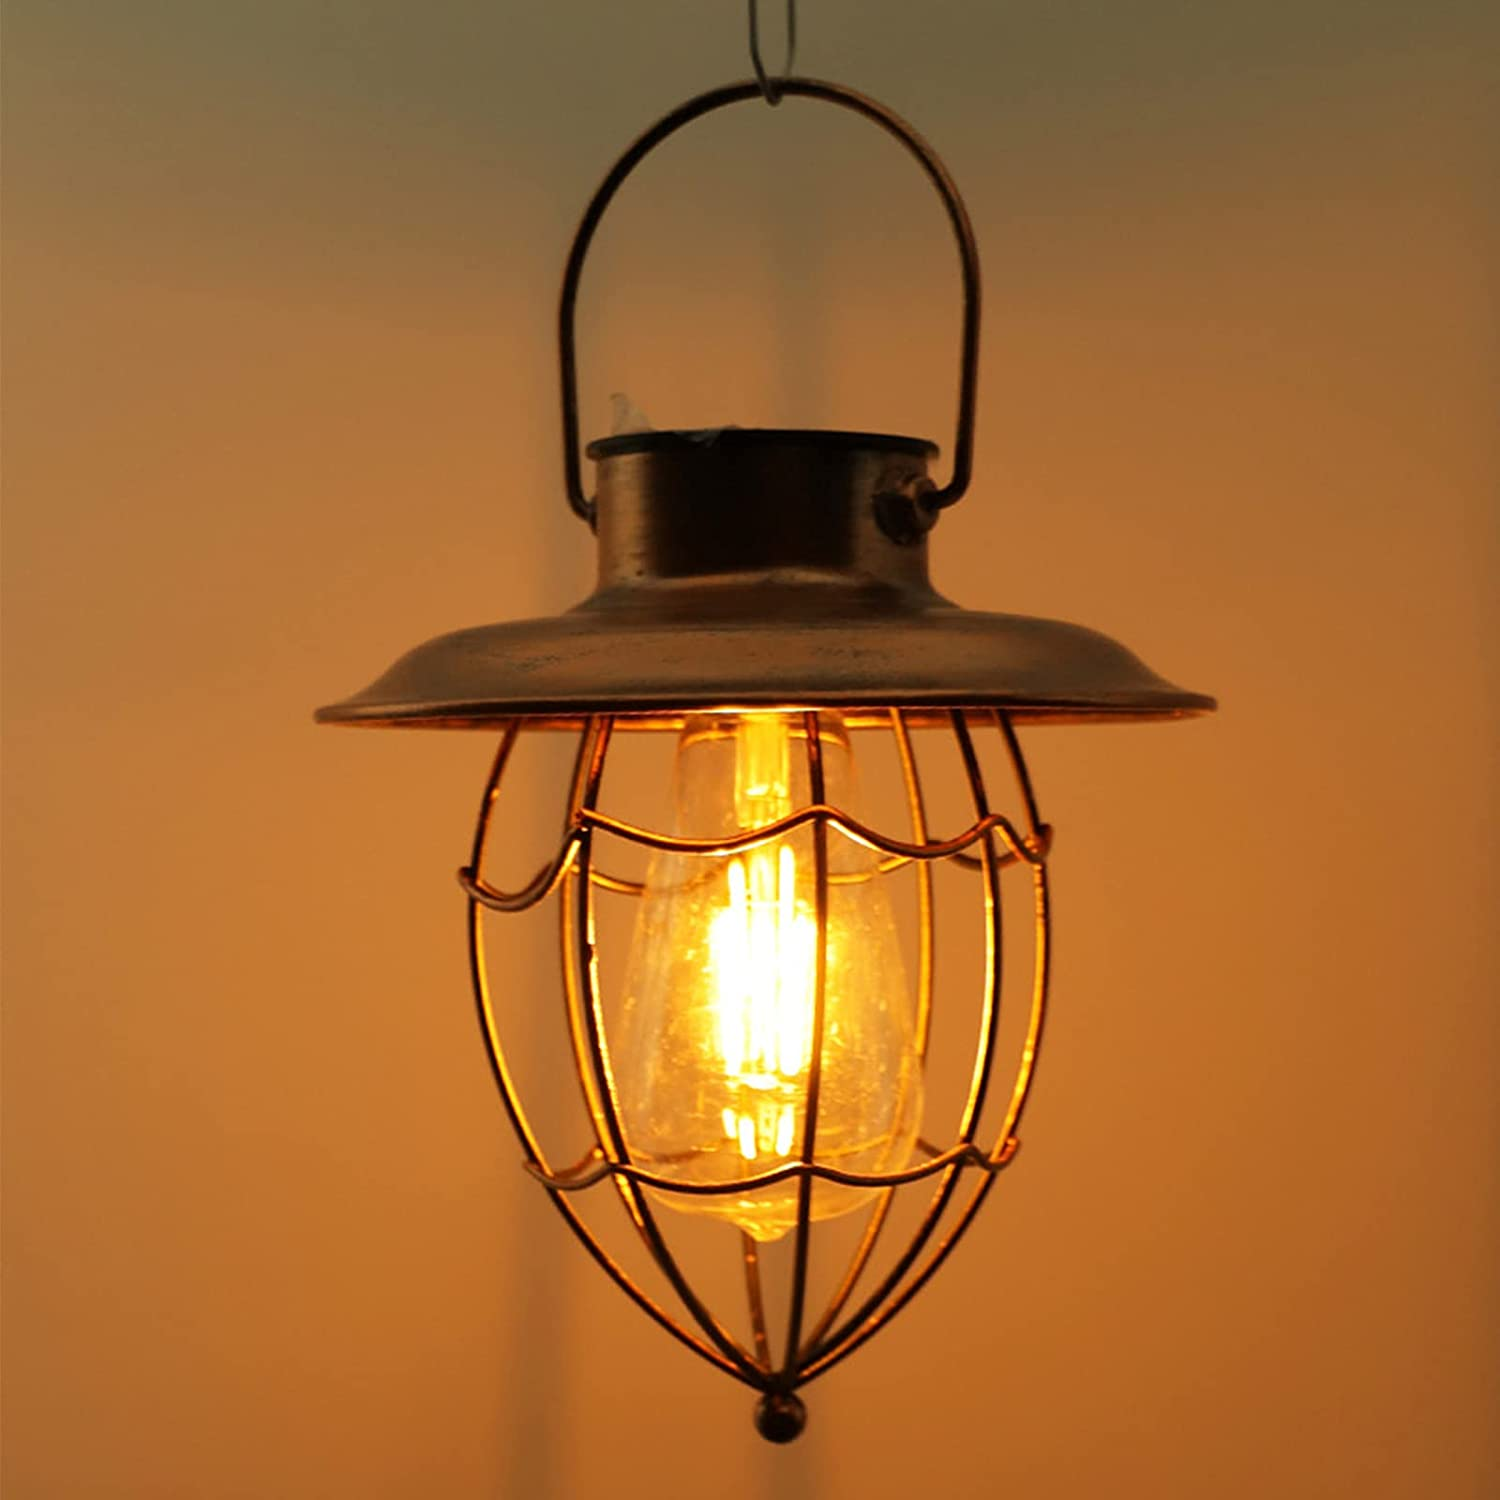 DFFng Vintage Copper Solar Lantern Opening large release sale Limited Special Price L Light Hanging Outdoor